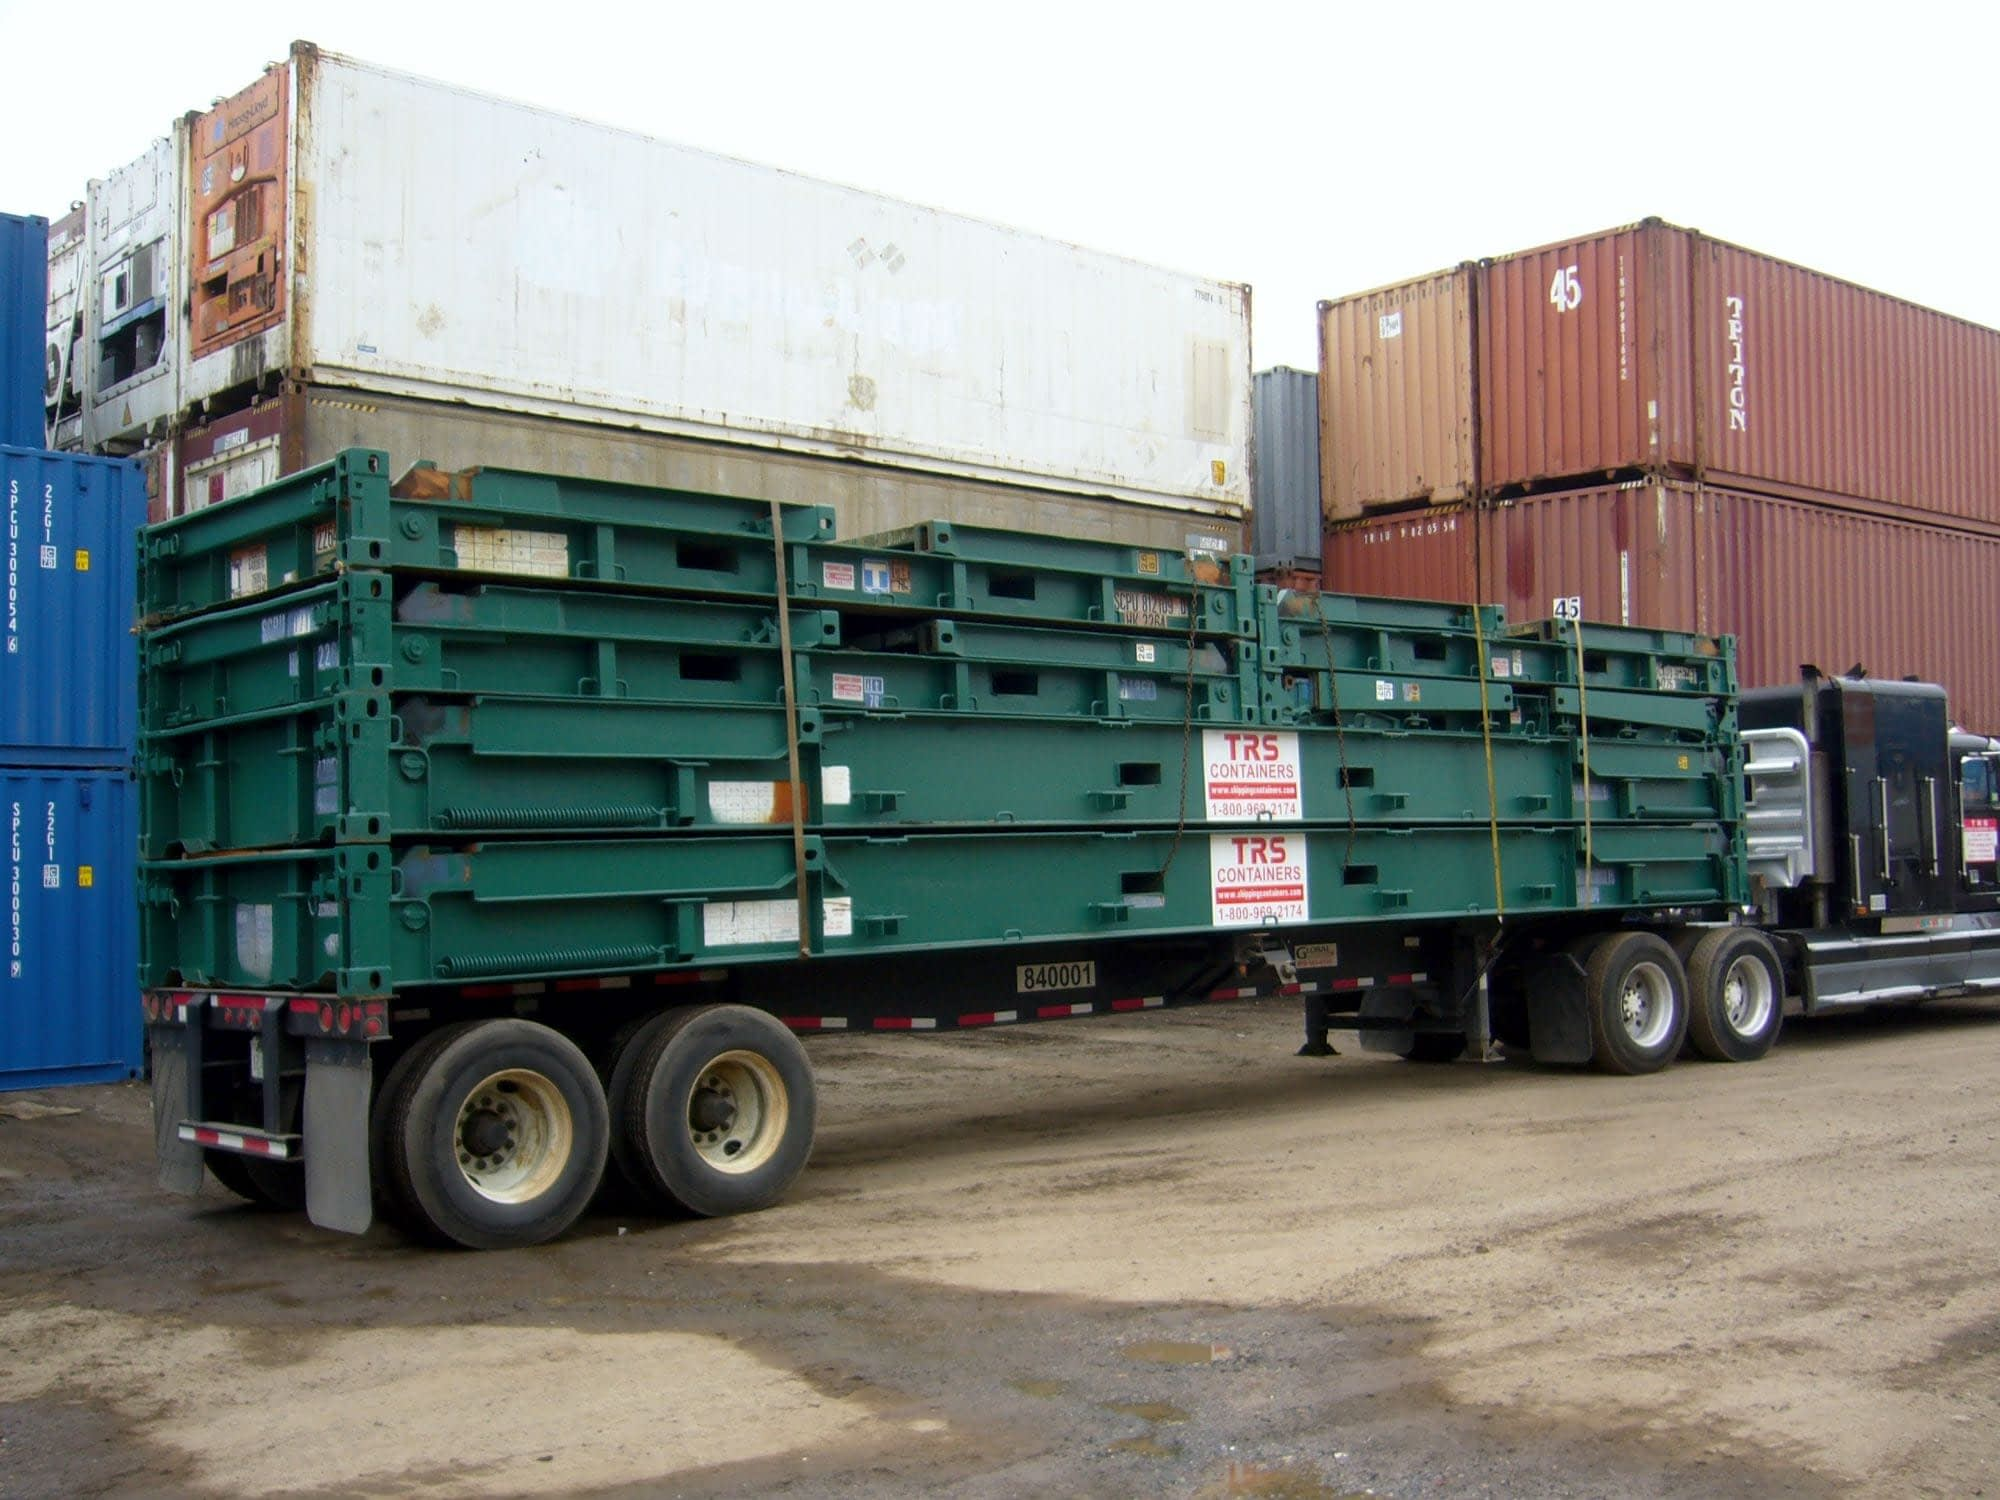 TRS sells and rents flatracks for domestic use and export